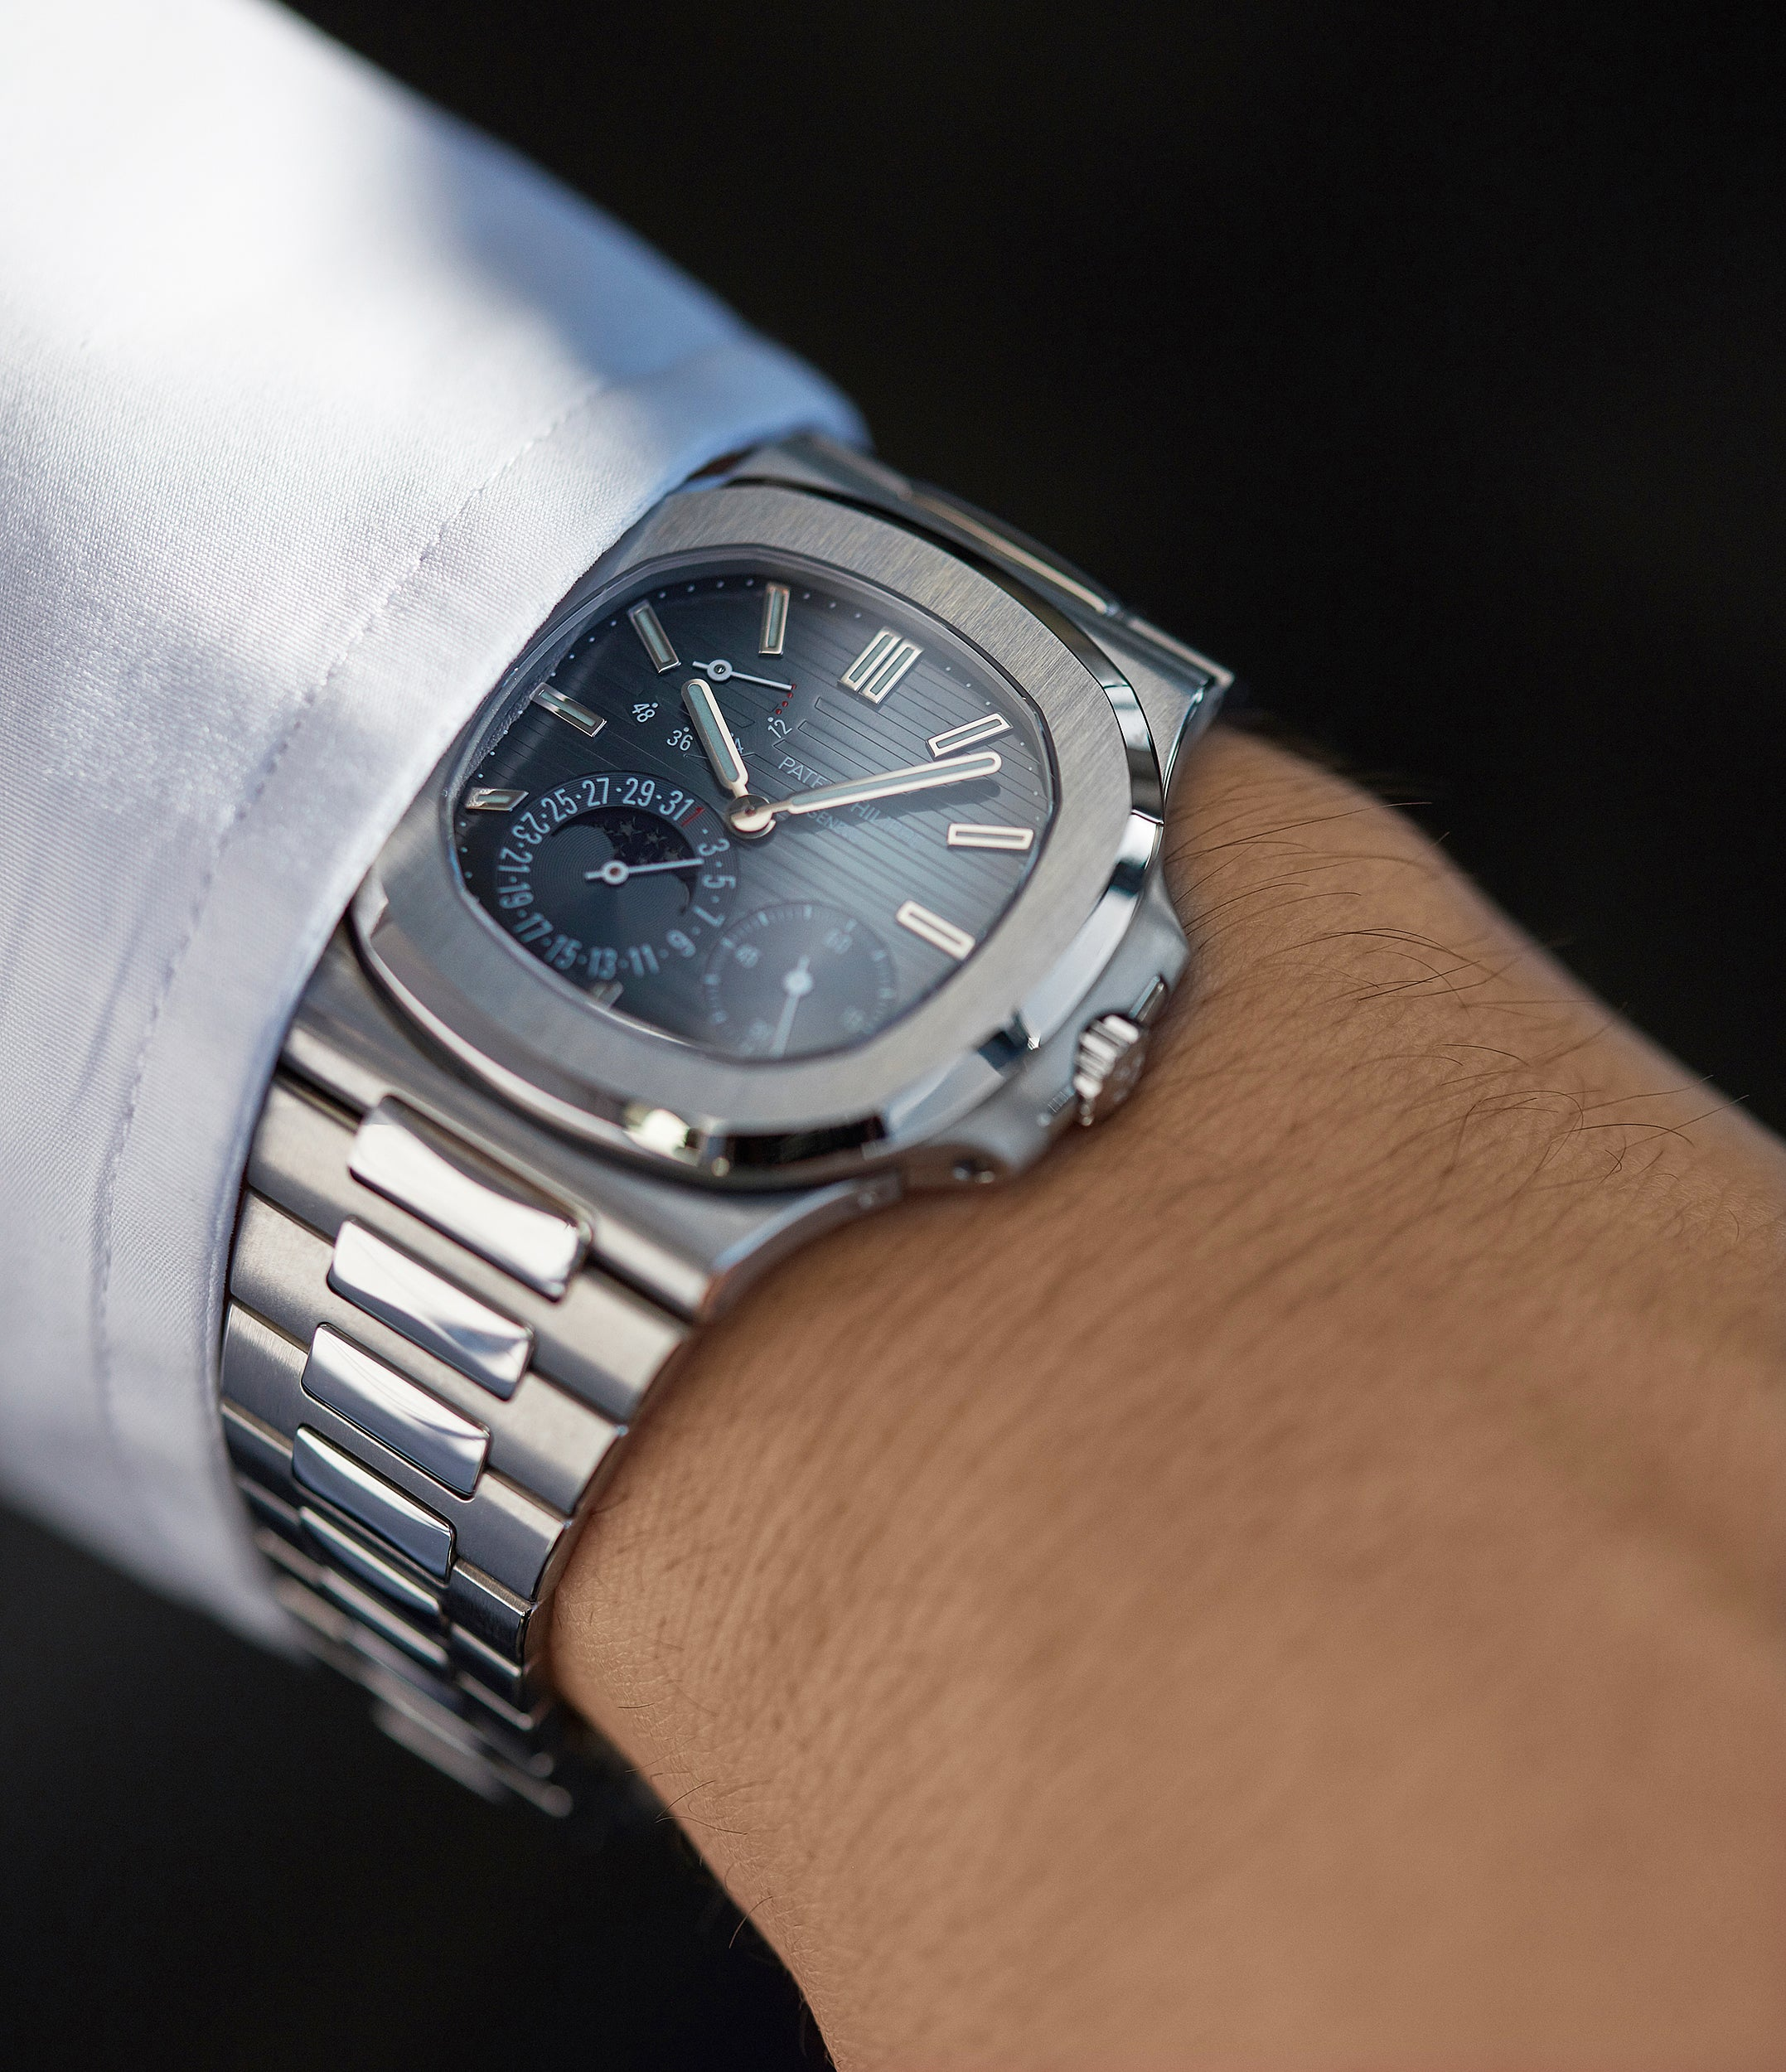 on the wrist Patek Philippe Nautilus Moon Phase 5712/1A-001 steel pre-owned watch for sale online at A Collected Man London UK specialist of rare watches